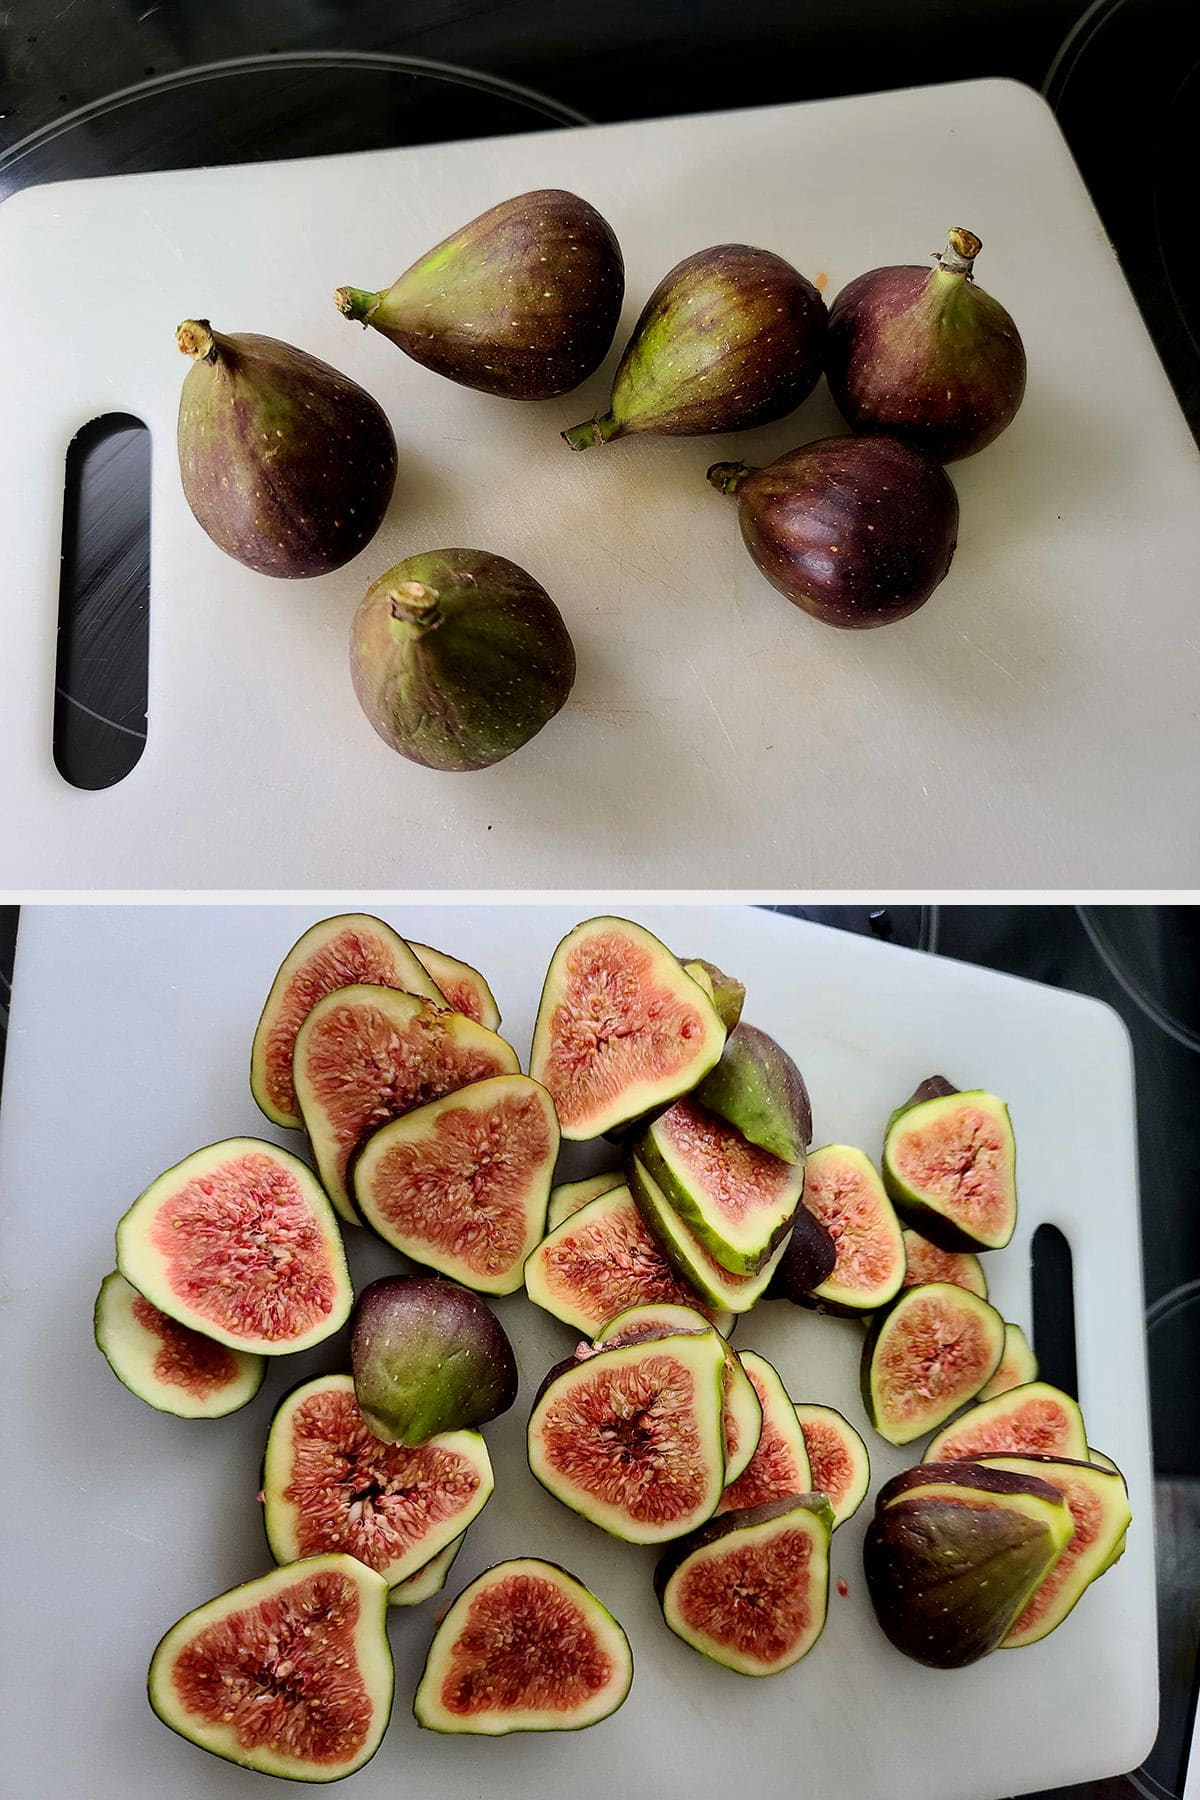 A two part compilation image showing 6 fresh figs, first whole, then sliced.